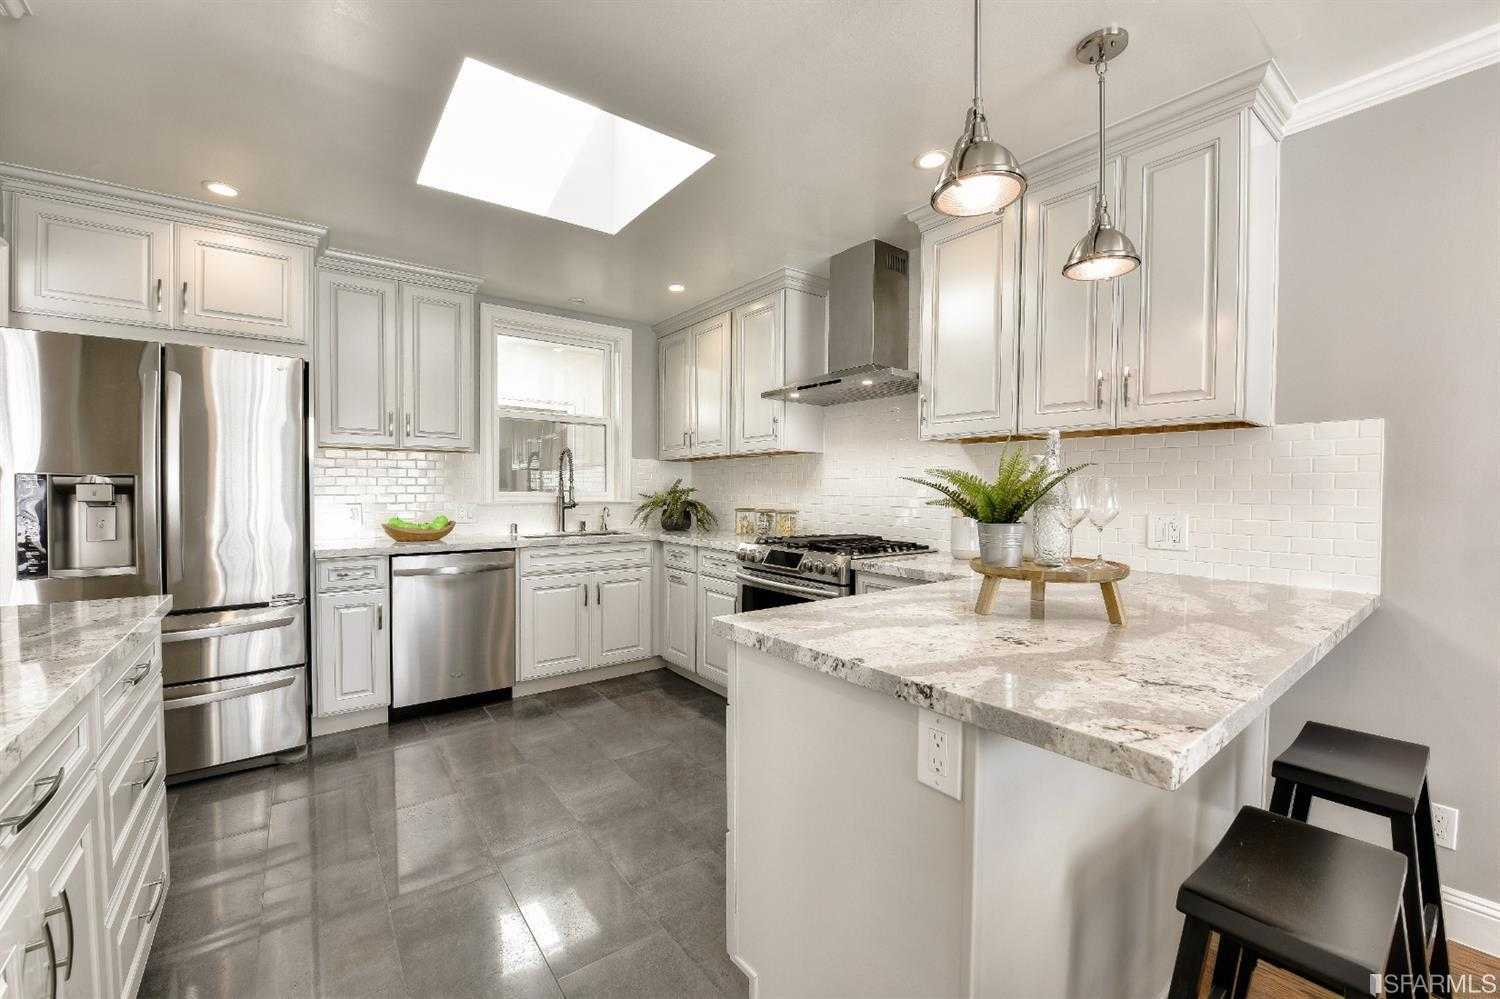 $1,495,000 - 5Br/3Ba -  for Sale in San Francisco